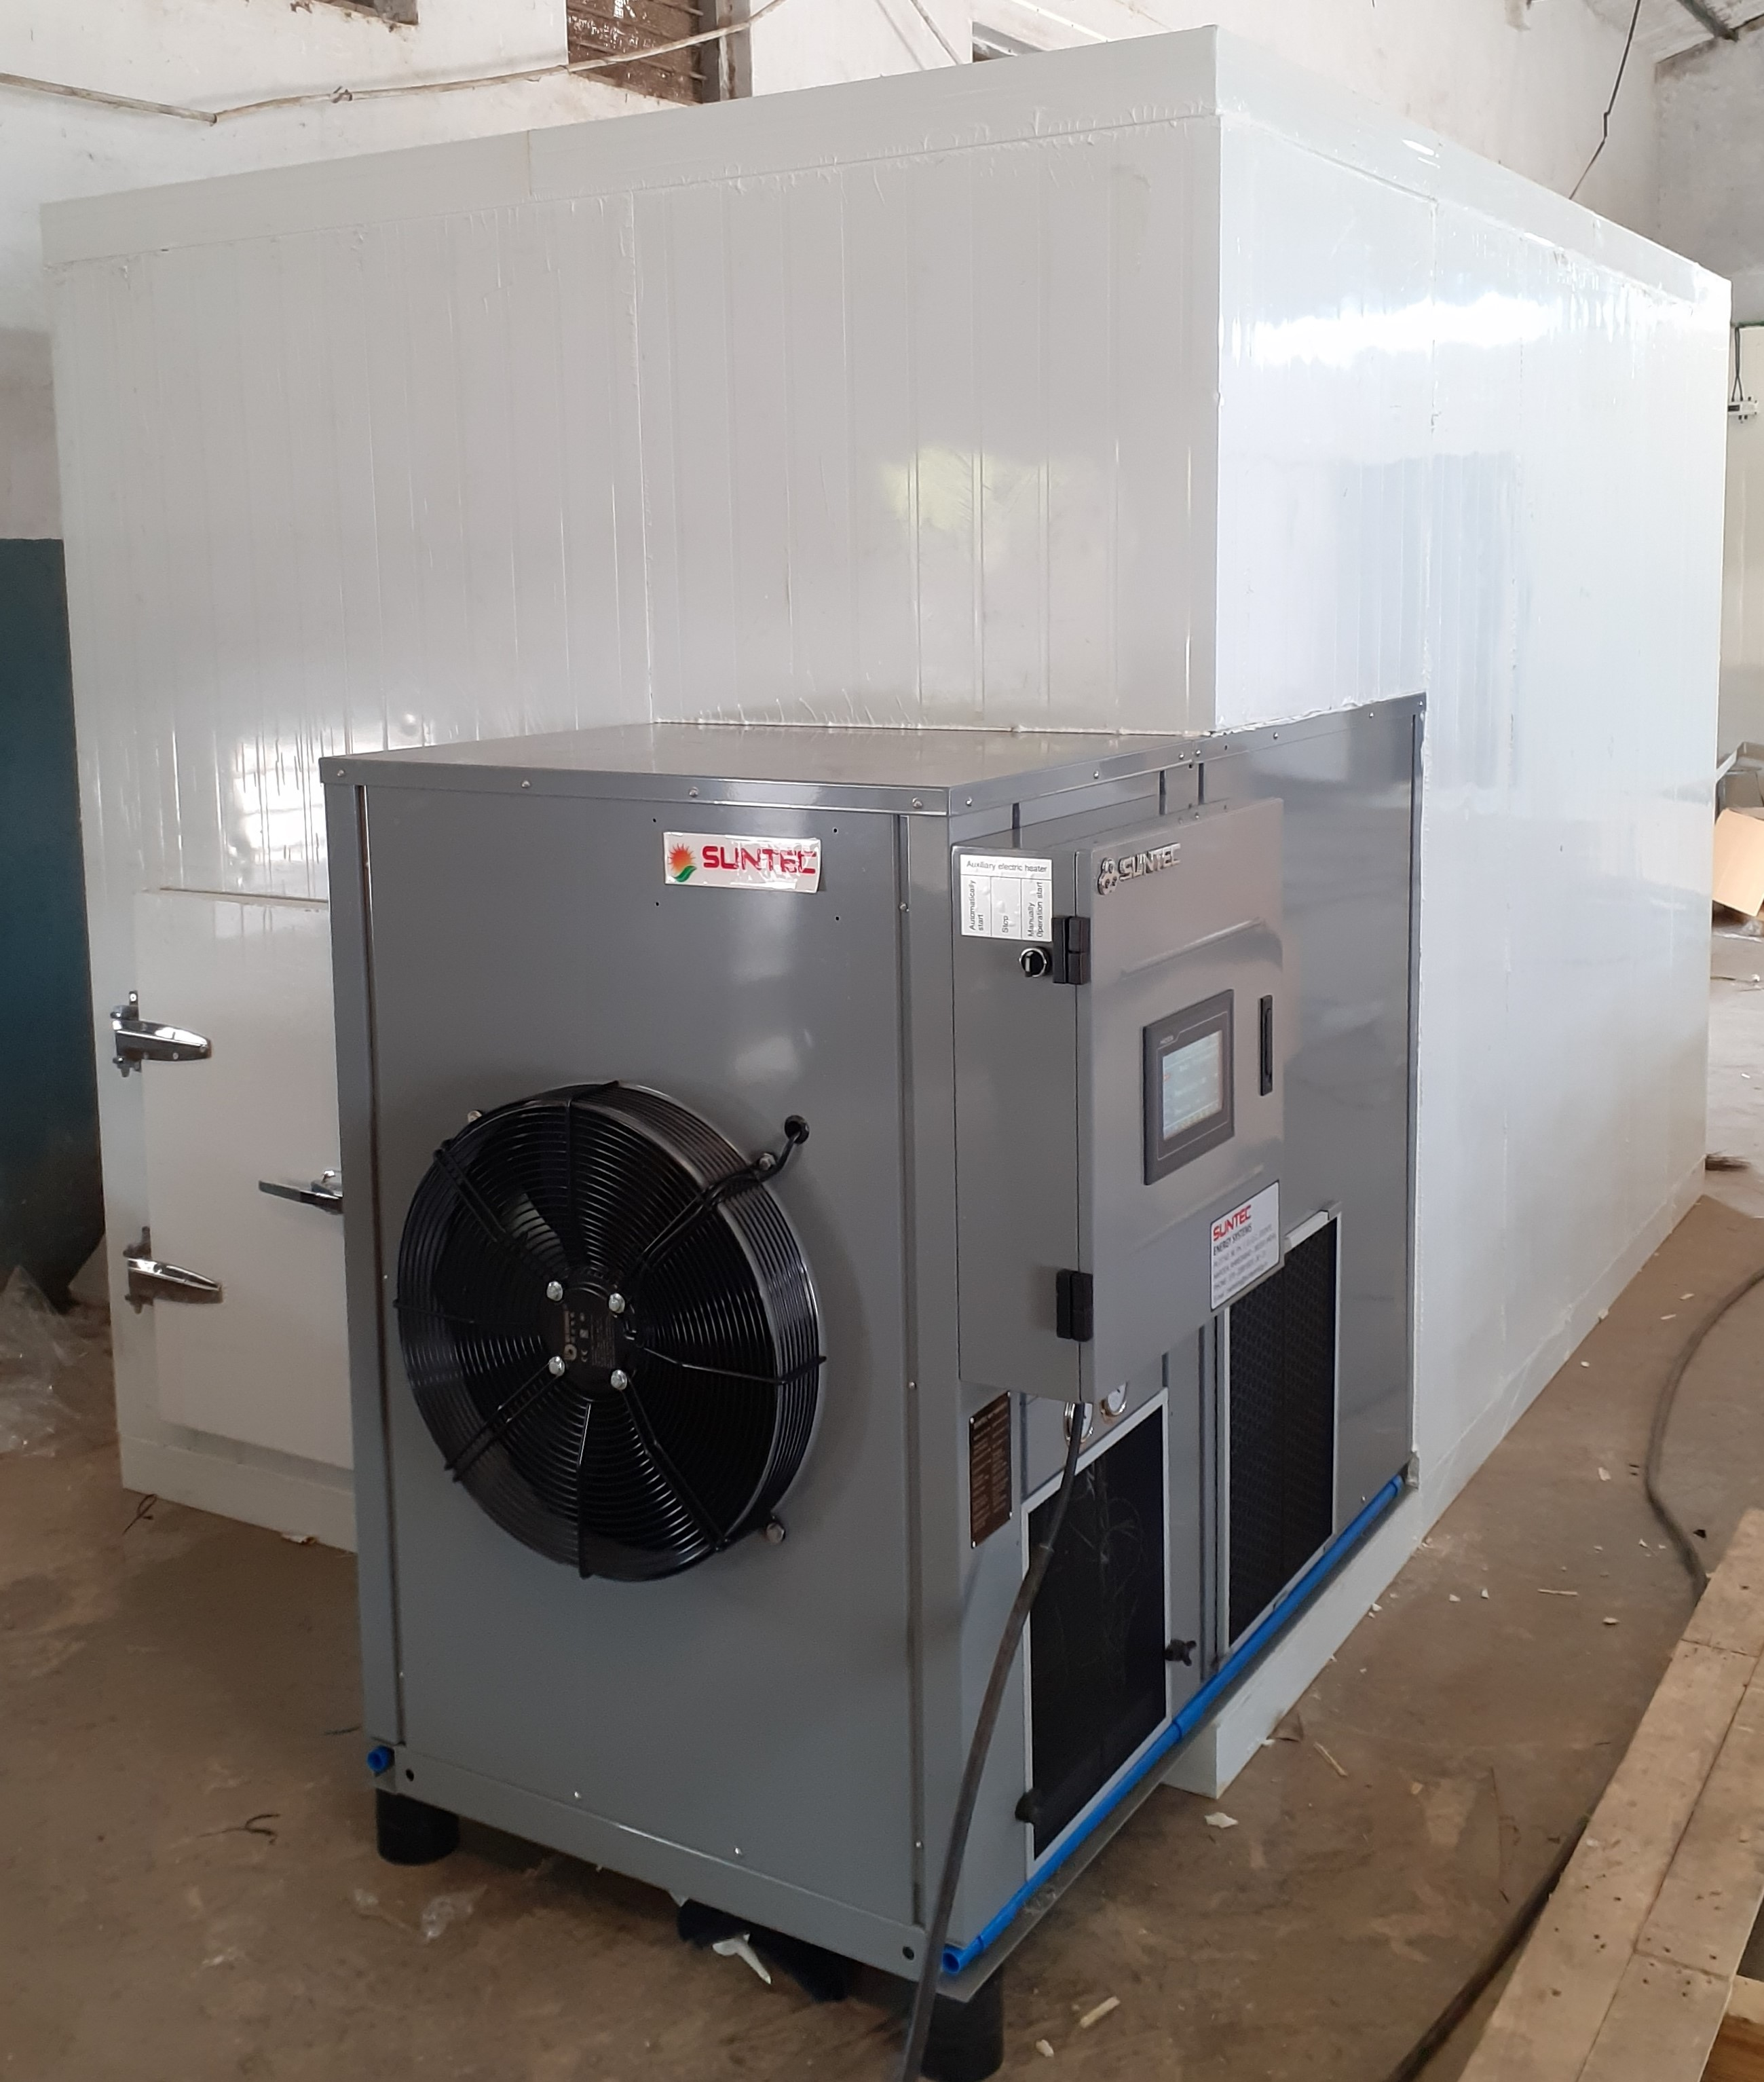 Dryers 01-1 - Suntec Energy System